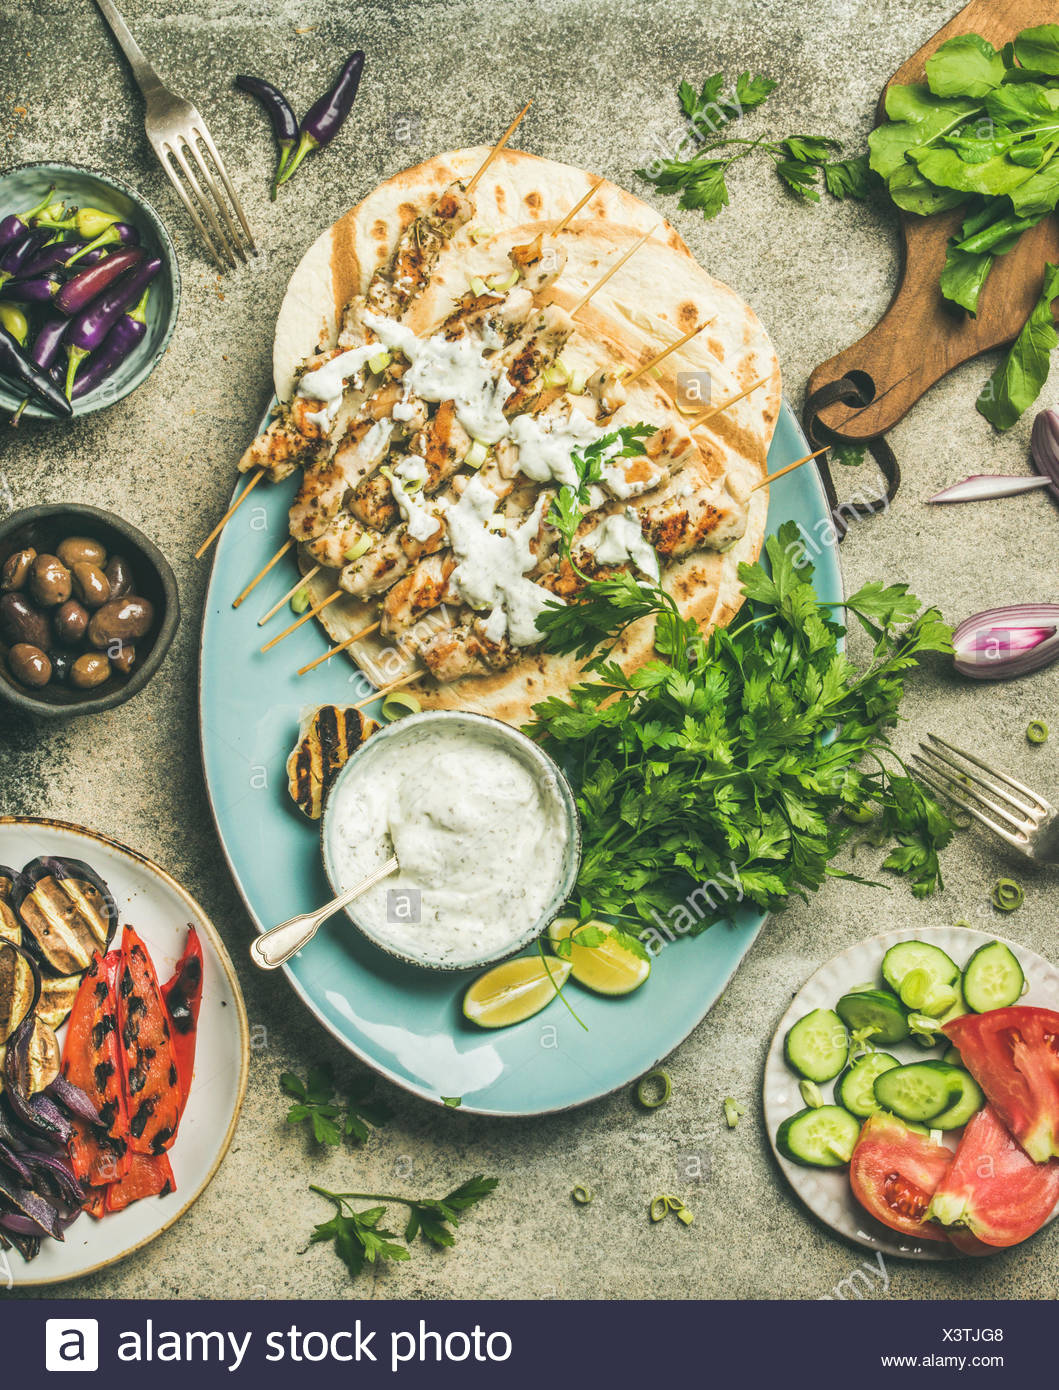 Summer barbecue party dinner set. Flatlay of grilled chicken skewers with yogurt dip, flatbreads, fresh parsley, vegetables, marinated olives and chil - Stock Image